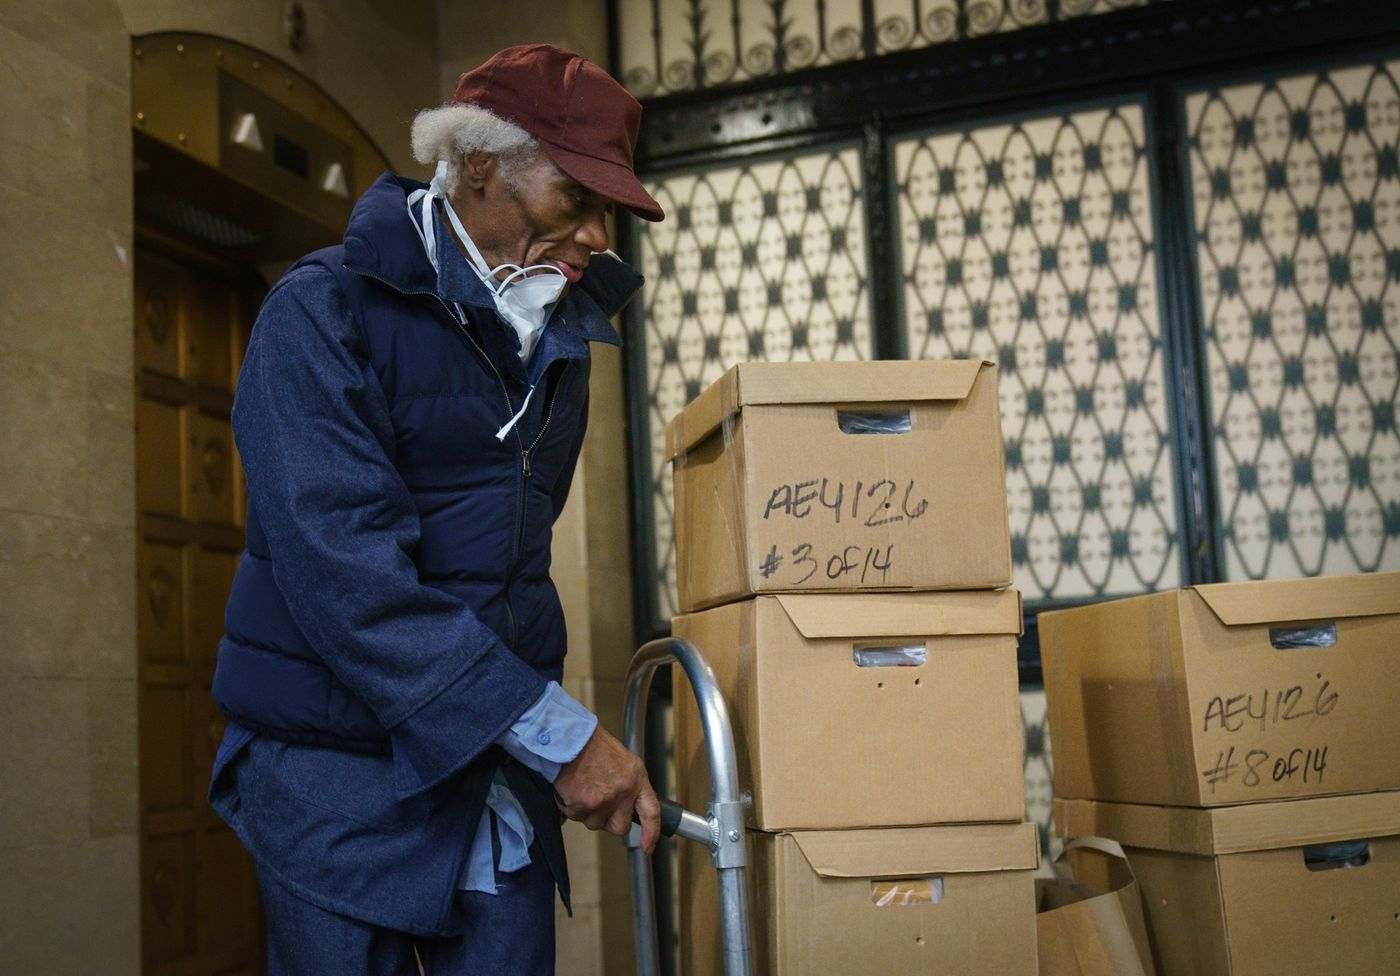 Joe Ligon brings boxes of legal documents to be stored at his lawyer's office after his release from prison after 68 years.